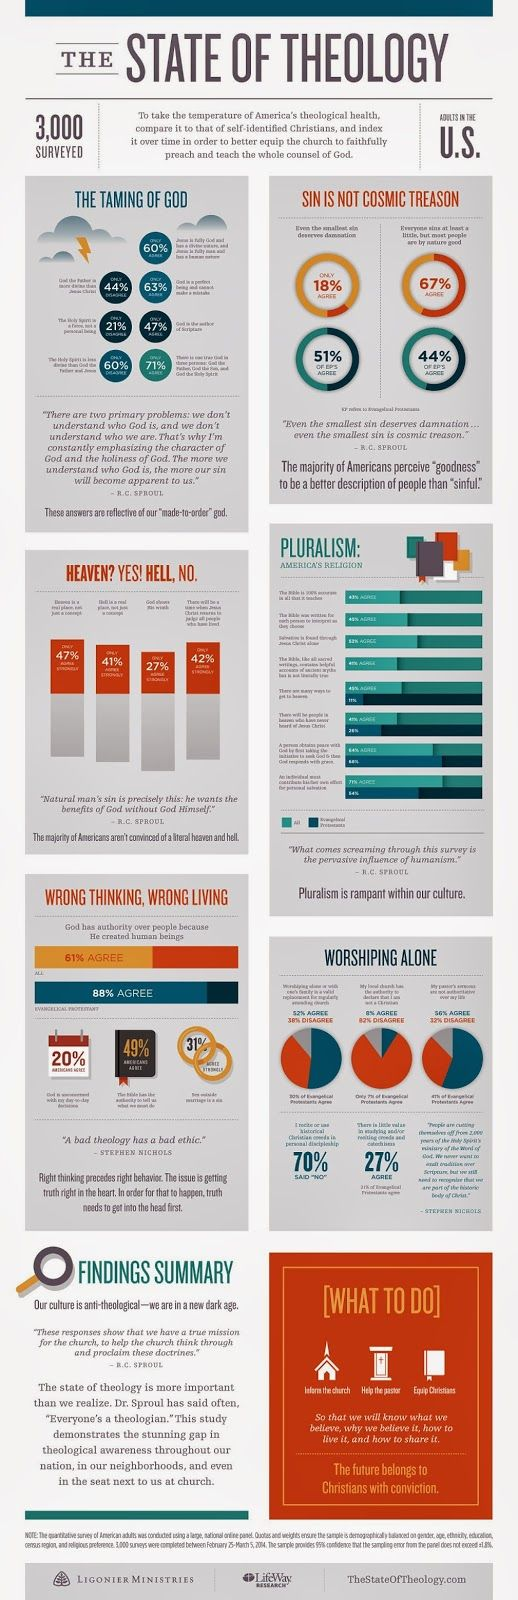 Theology Infographic